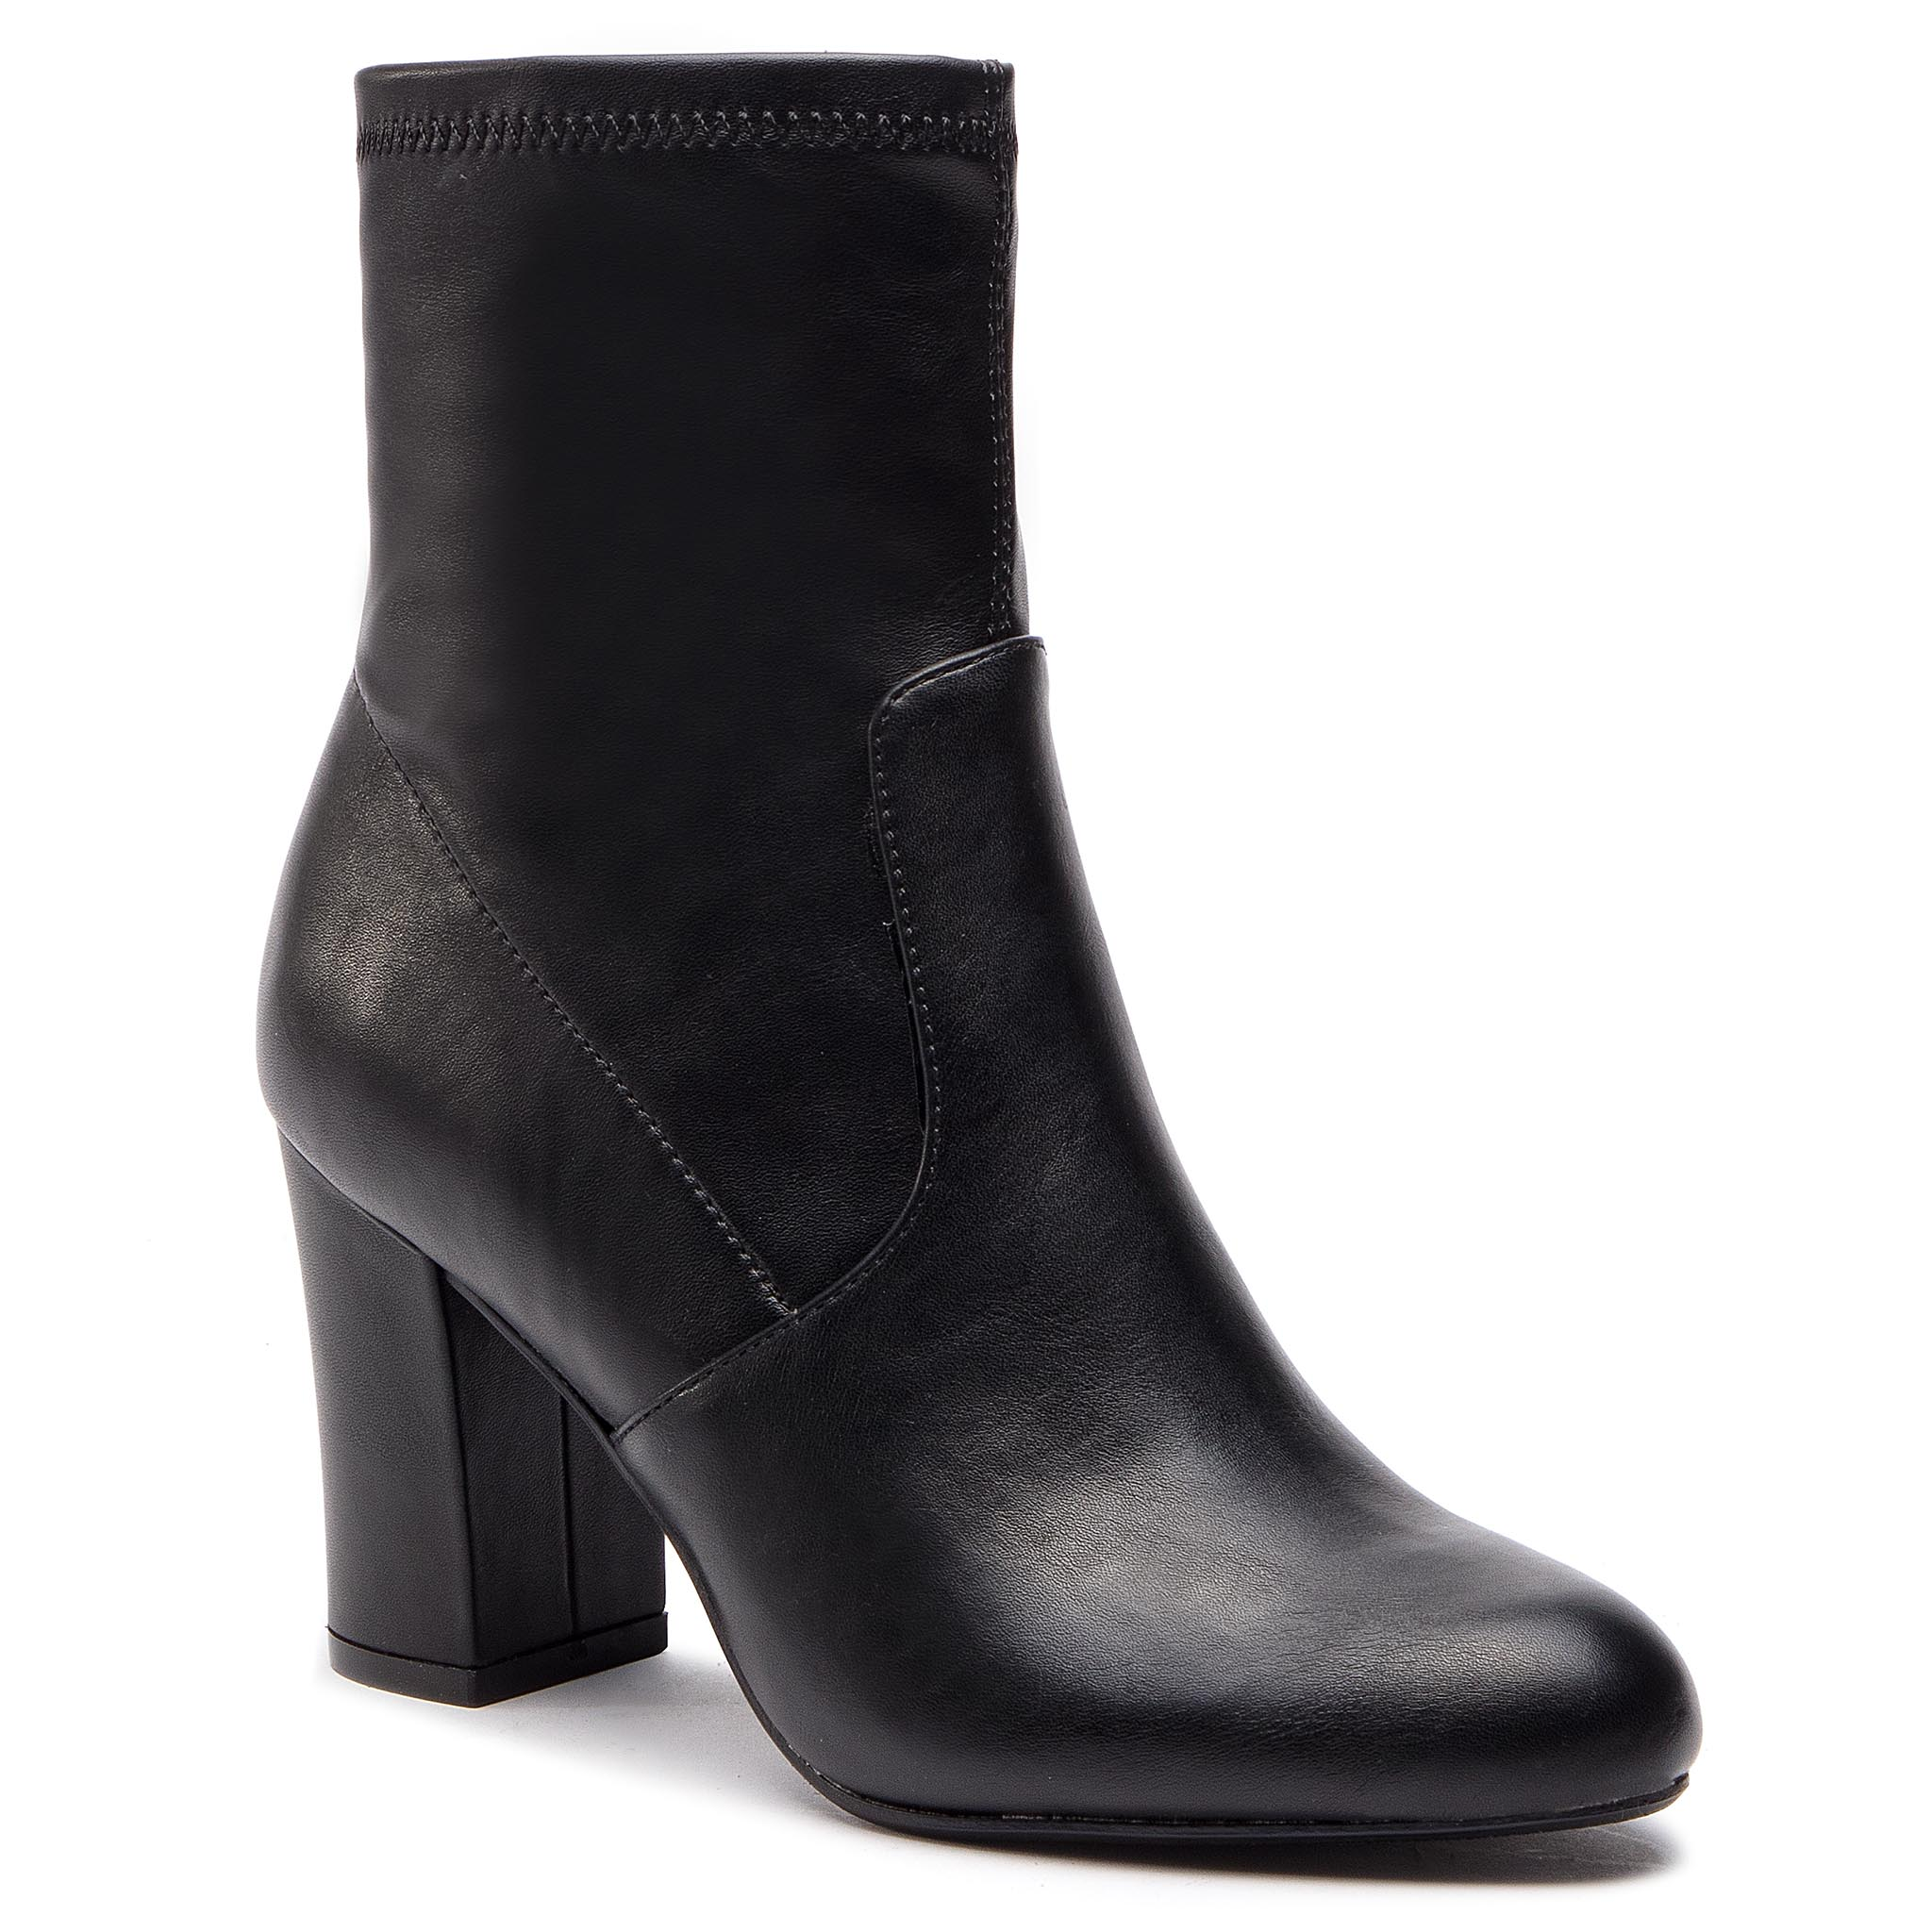 Botine STEVE MADDEN - Actual Ankle Boot SM11000188-02002-001 Black